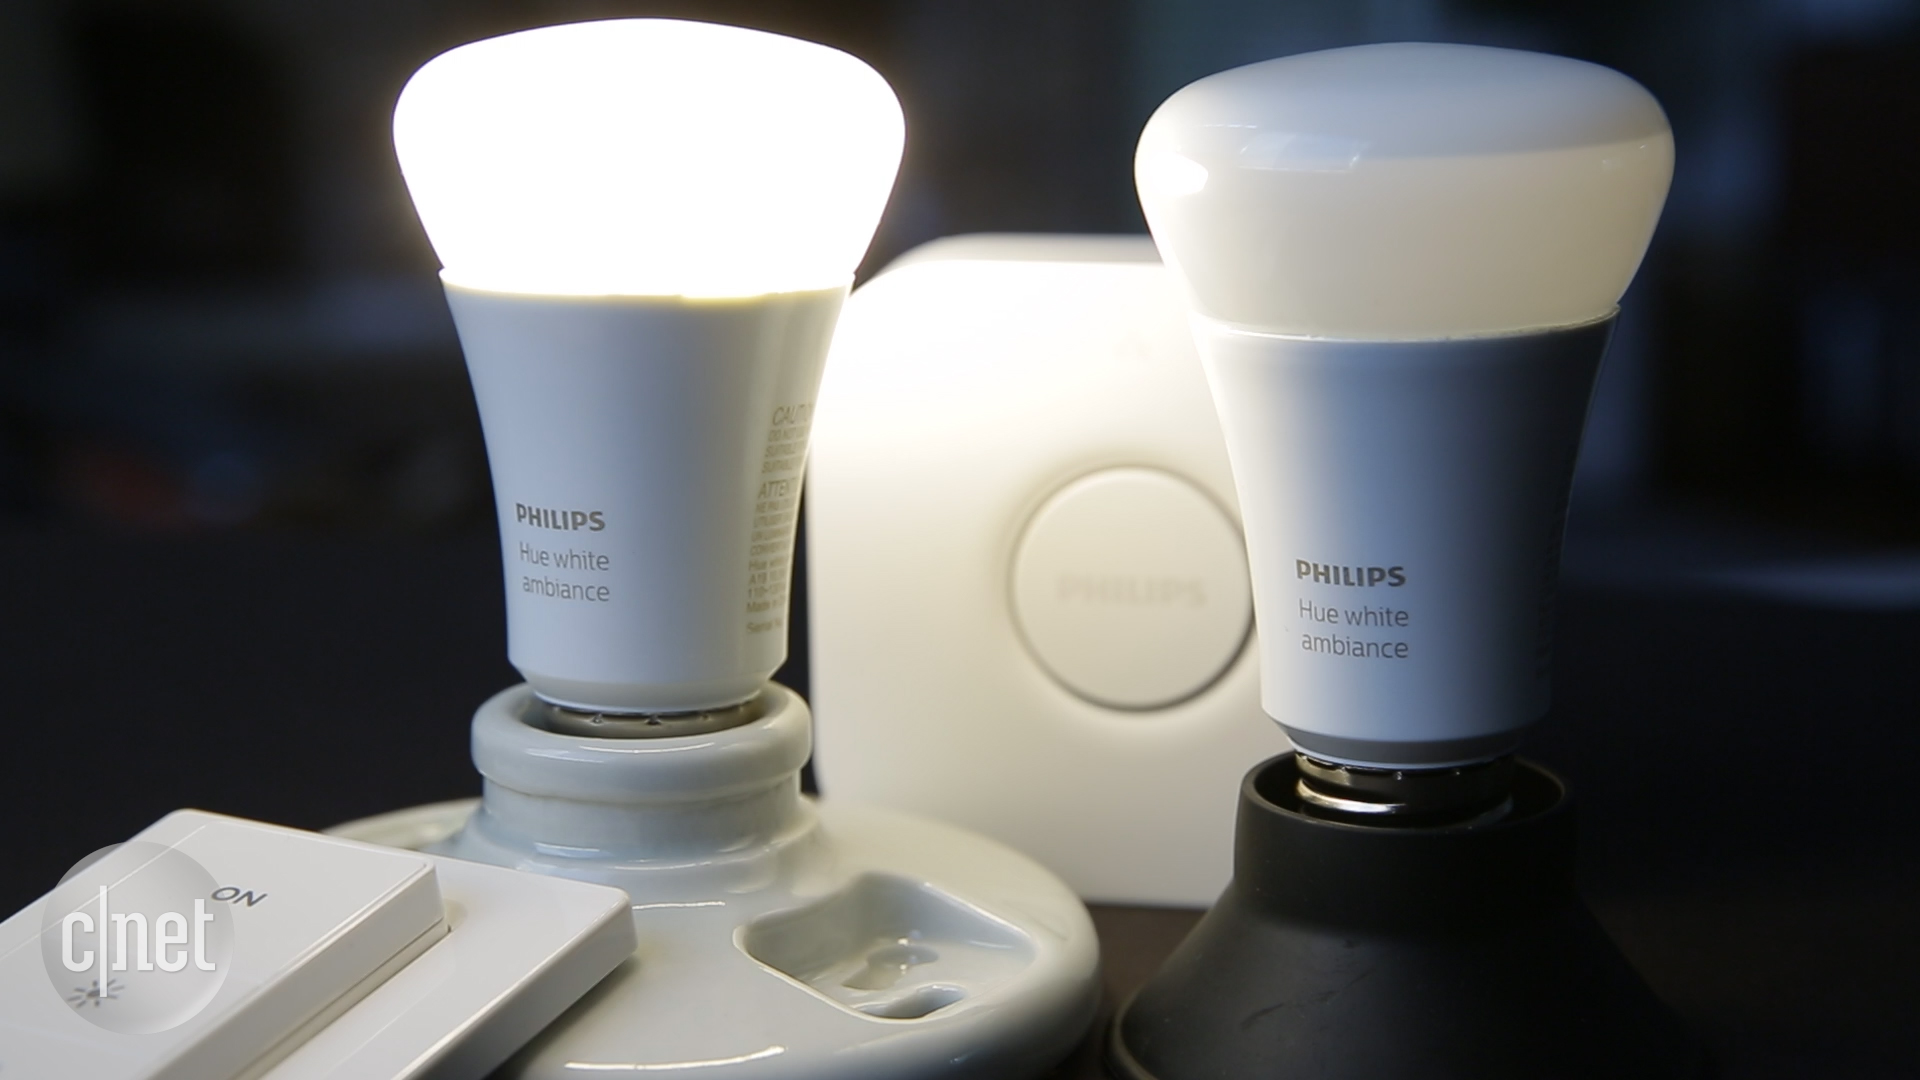 Philips Hue White Ambiance bulbs cut the colors and the cost